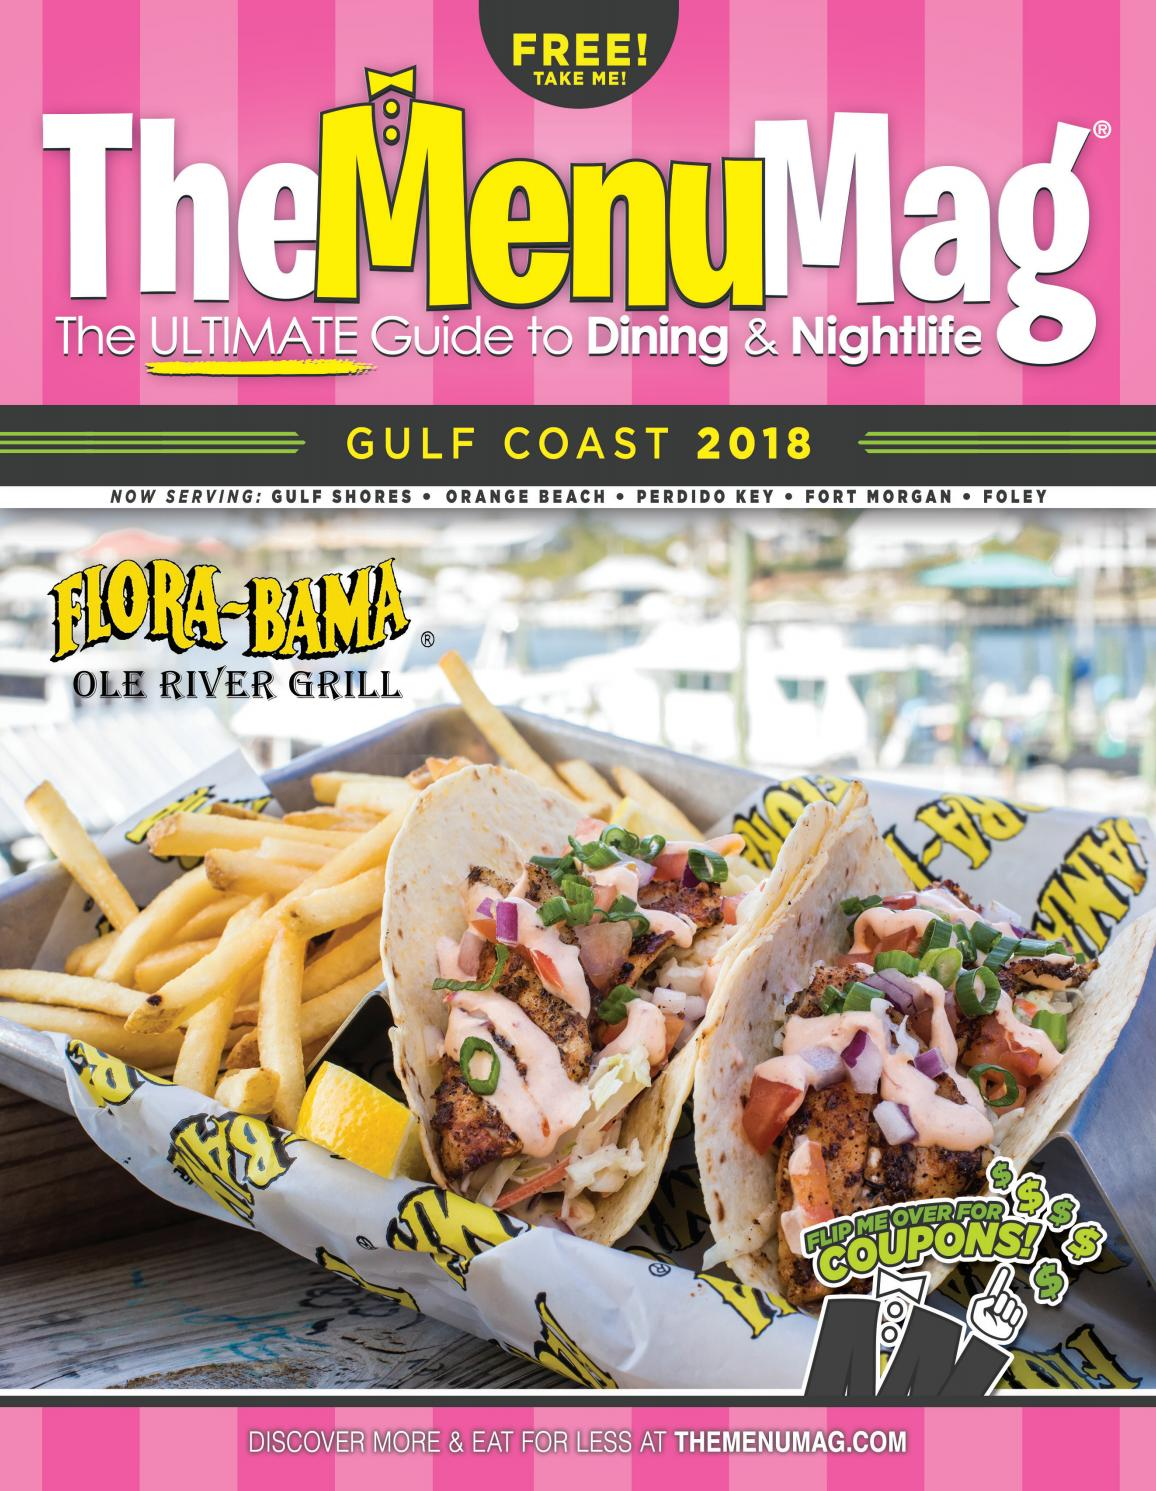 photo relating to Gulf Shores Printable Coupons identify The Menu Mag: Gulf Coastline Version 2018 by way of The Menu Mag - issuu